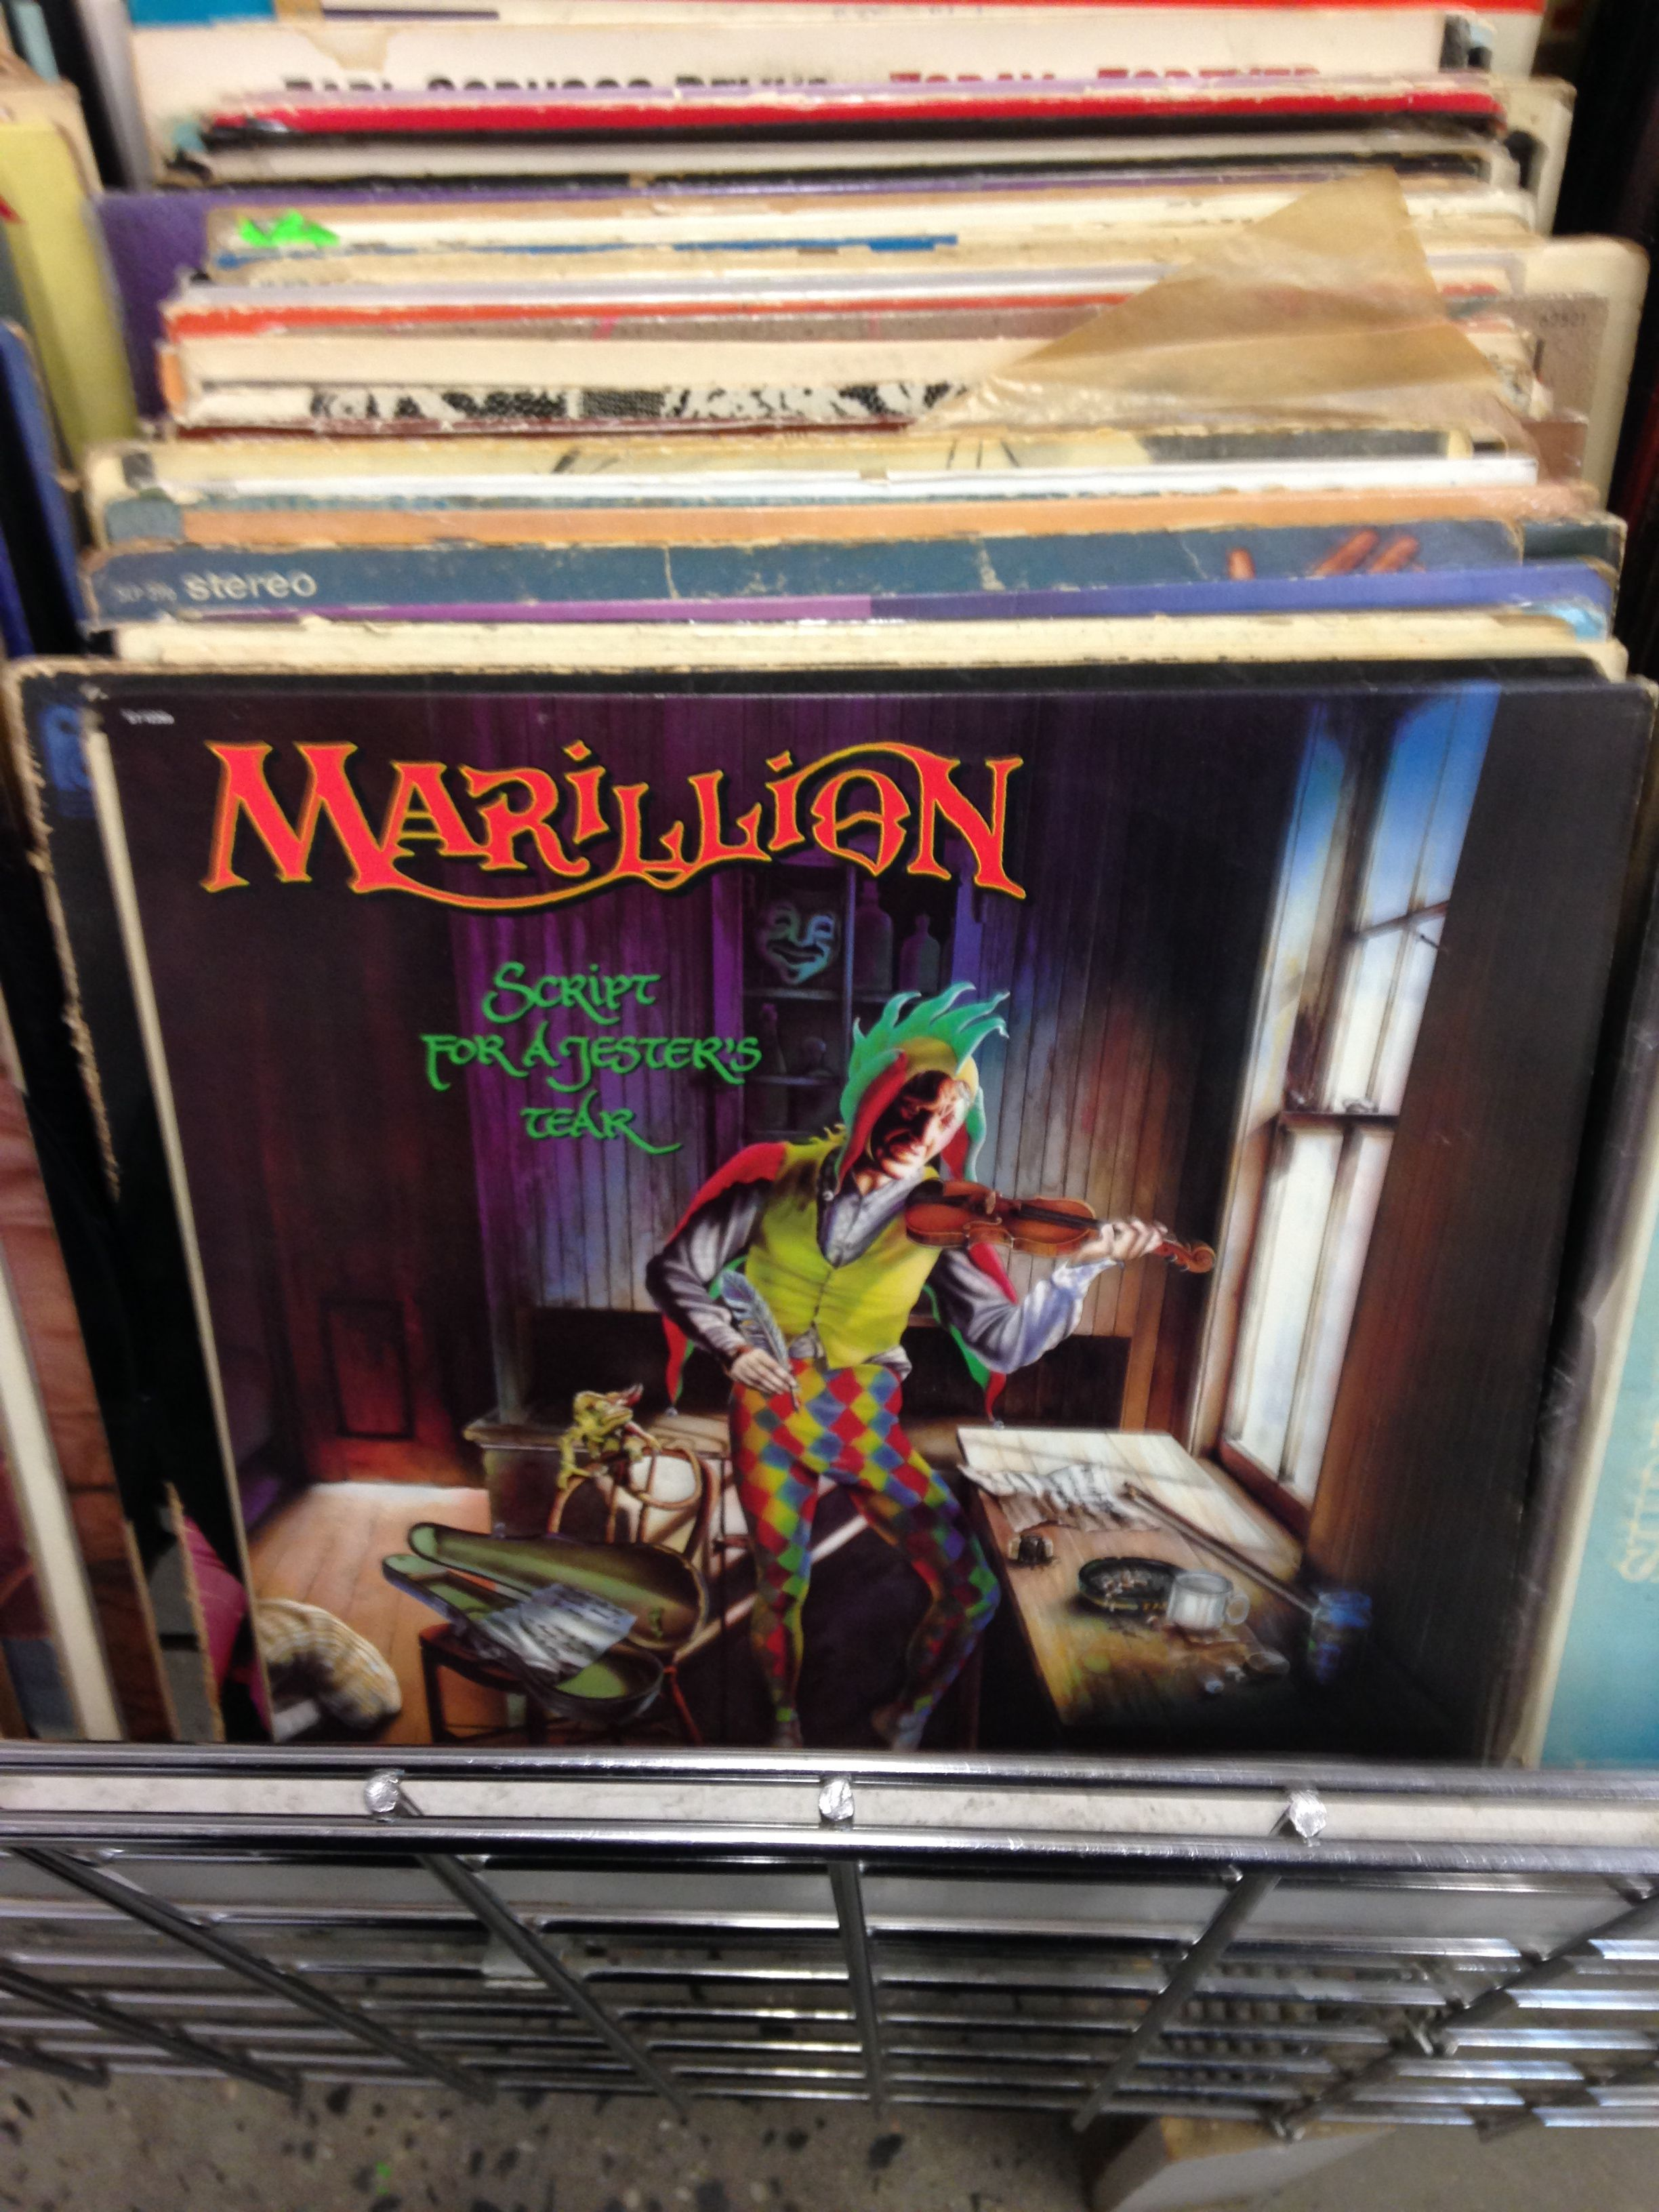 How Cool Is It To Find This Lp Marillion Script For A Jester S Tear For A Dollar Progressive Rock King Crimson Jester